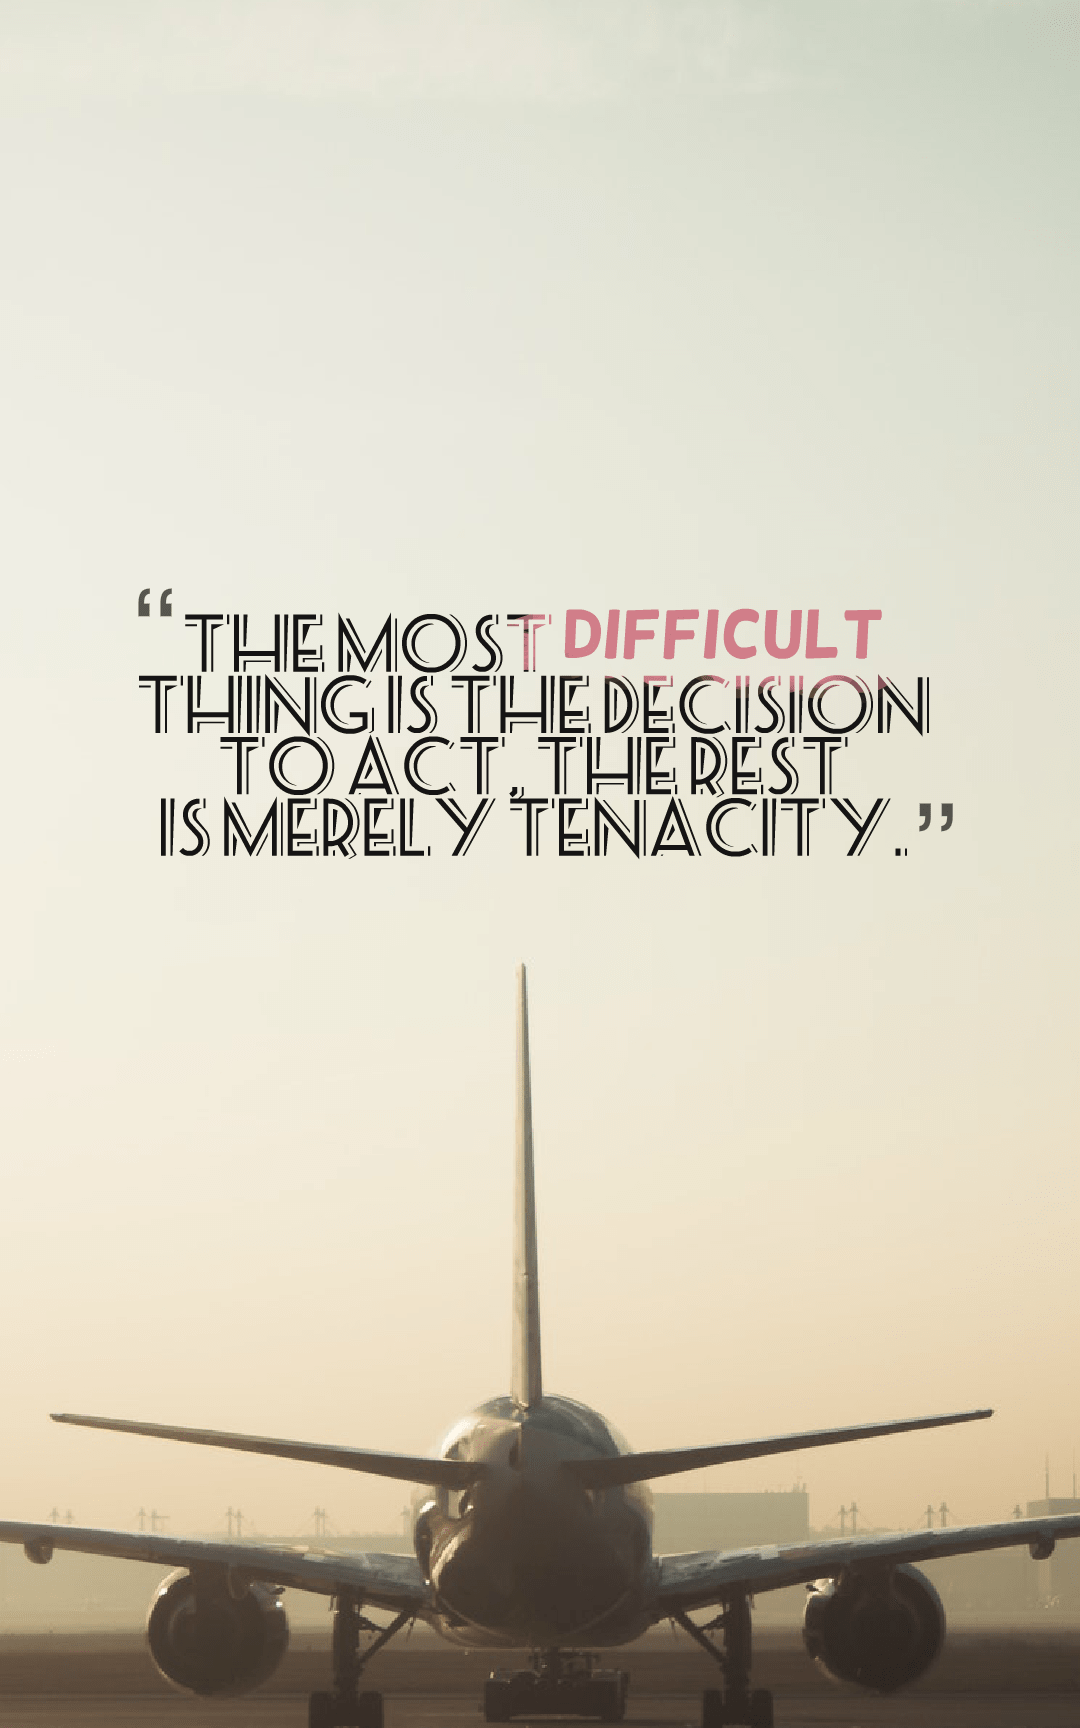 Quotes image of The most difficult thing is the decision to act, the rest is merely tenacity.